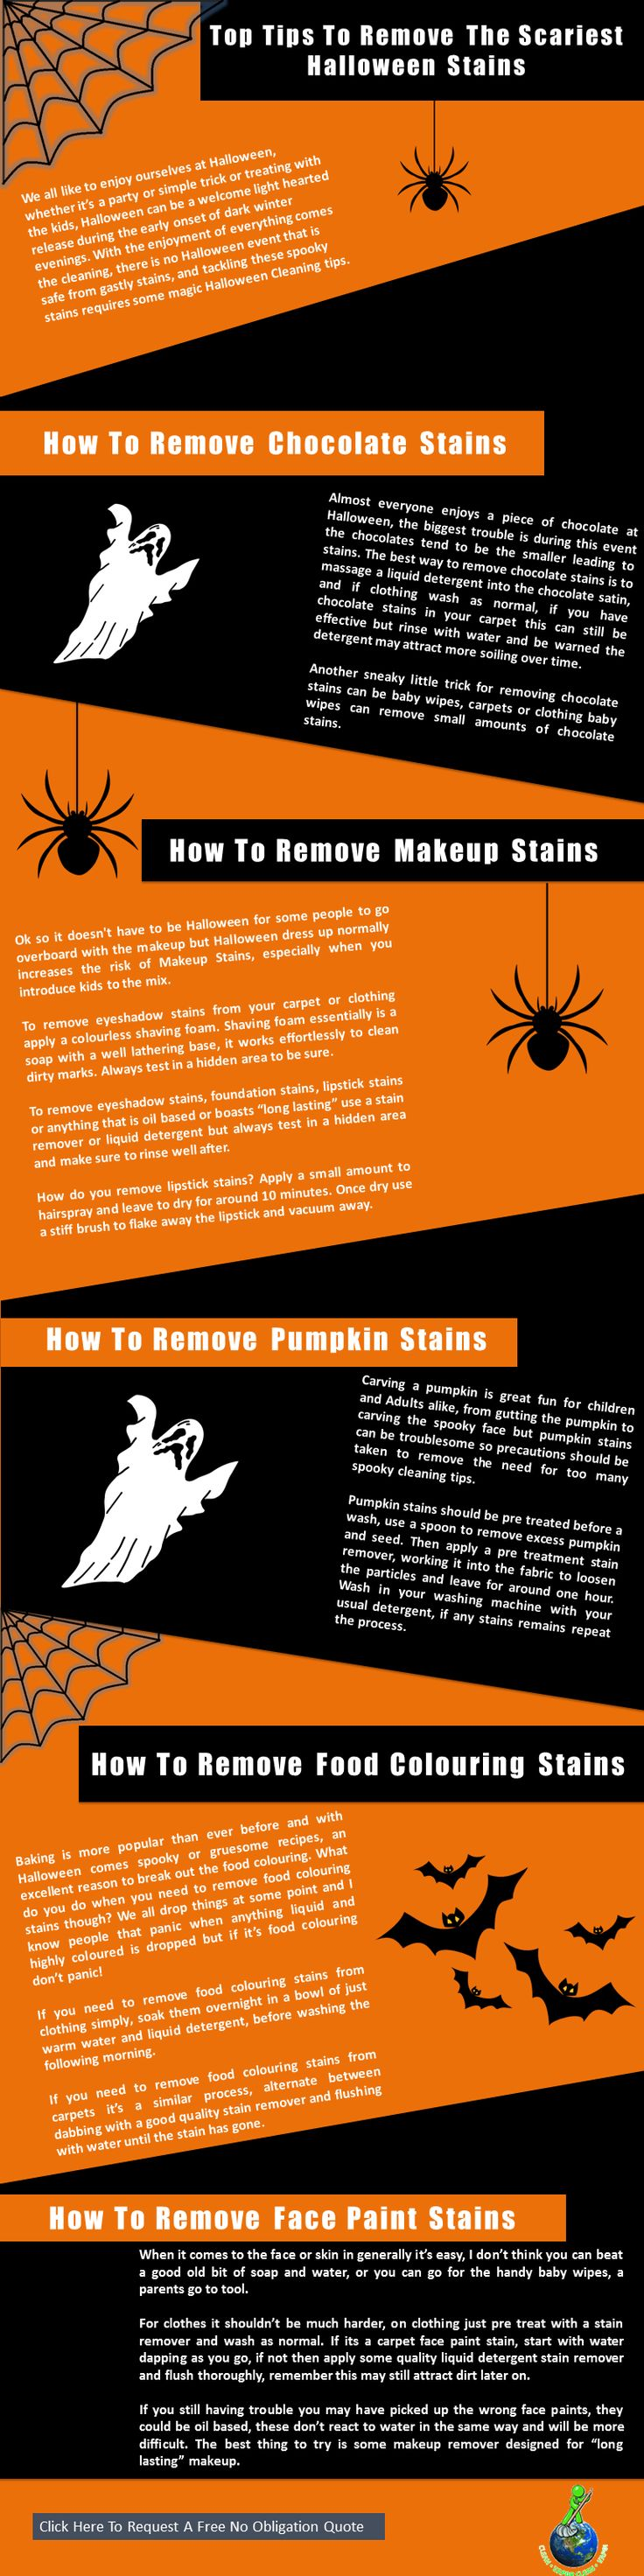 Halloween cleaning tips for stain removal remove make up and spills from home and clothes